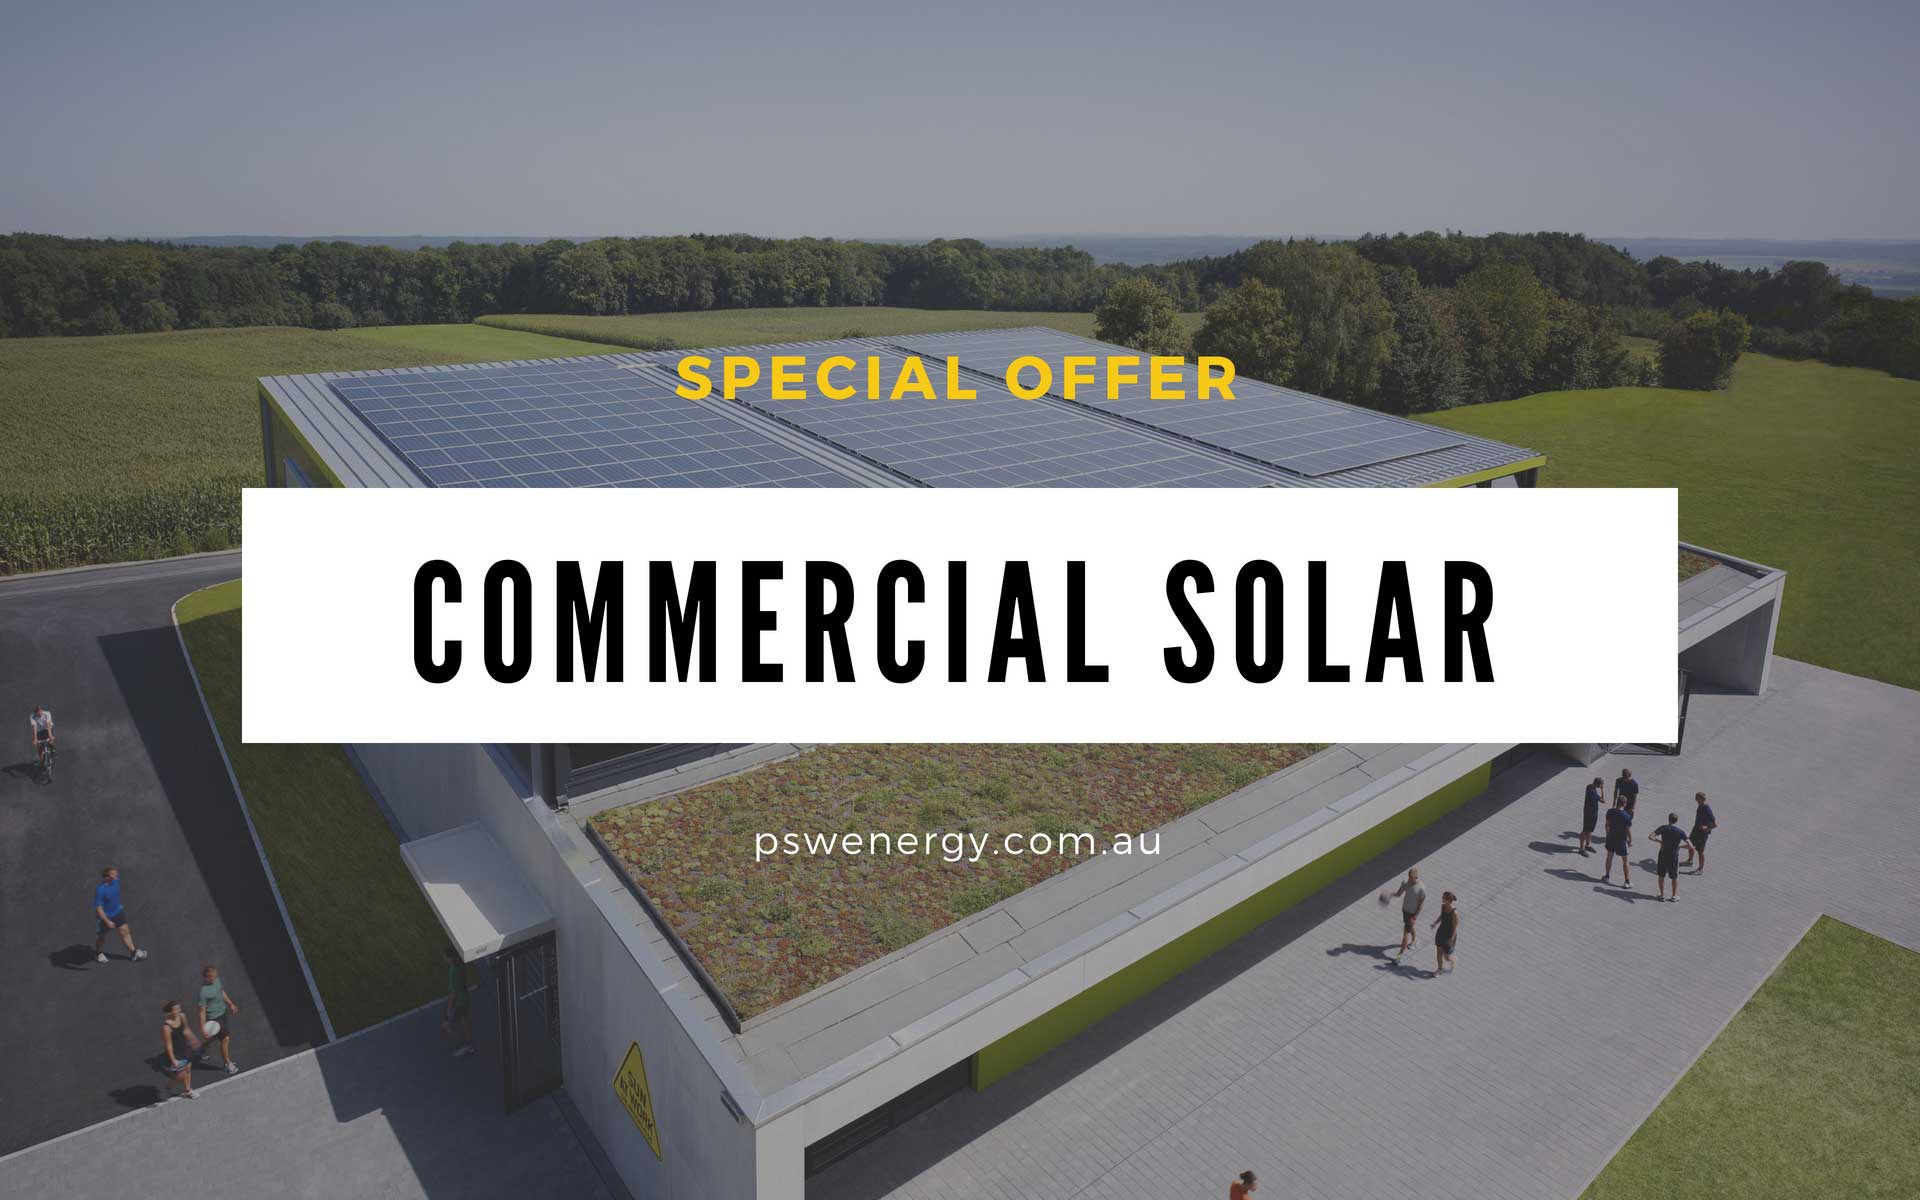 Commercial Solar Perth & Bunbury WA by PSW Energy